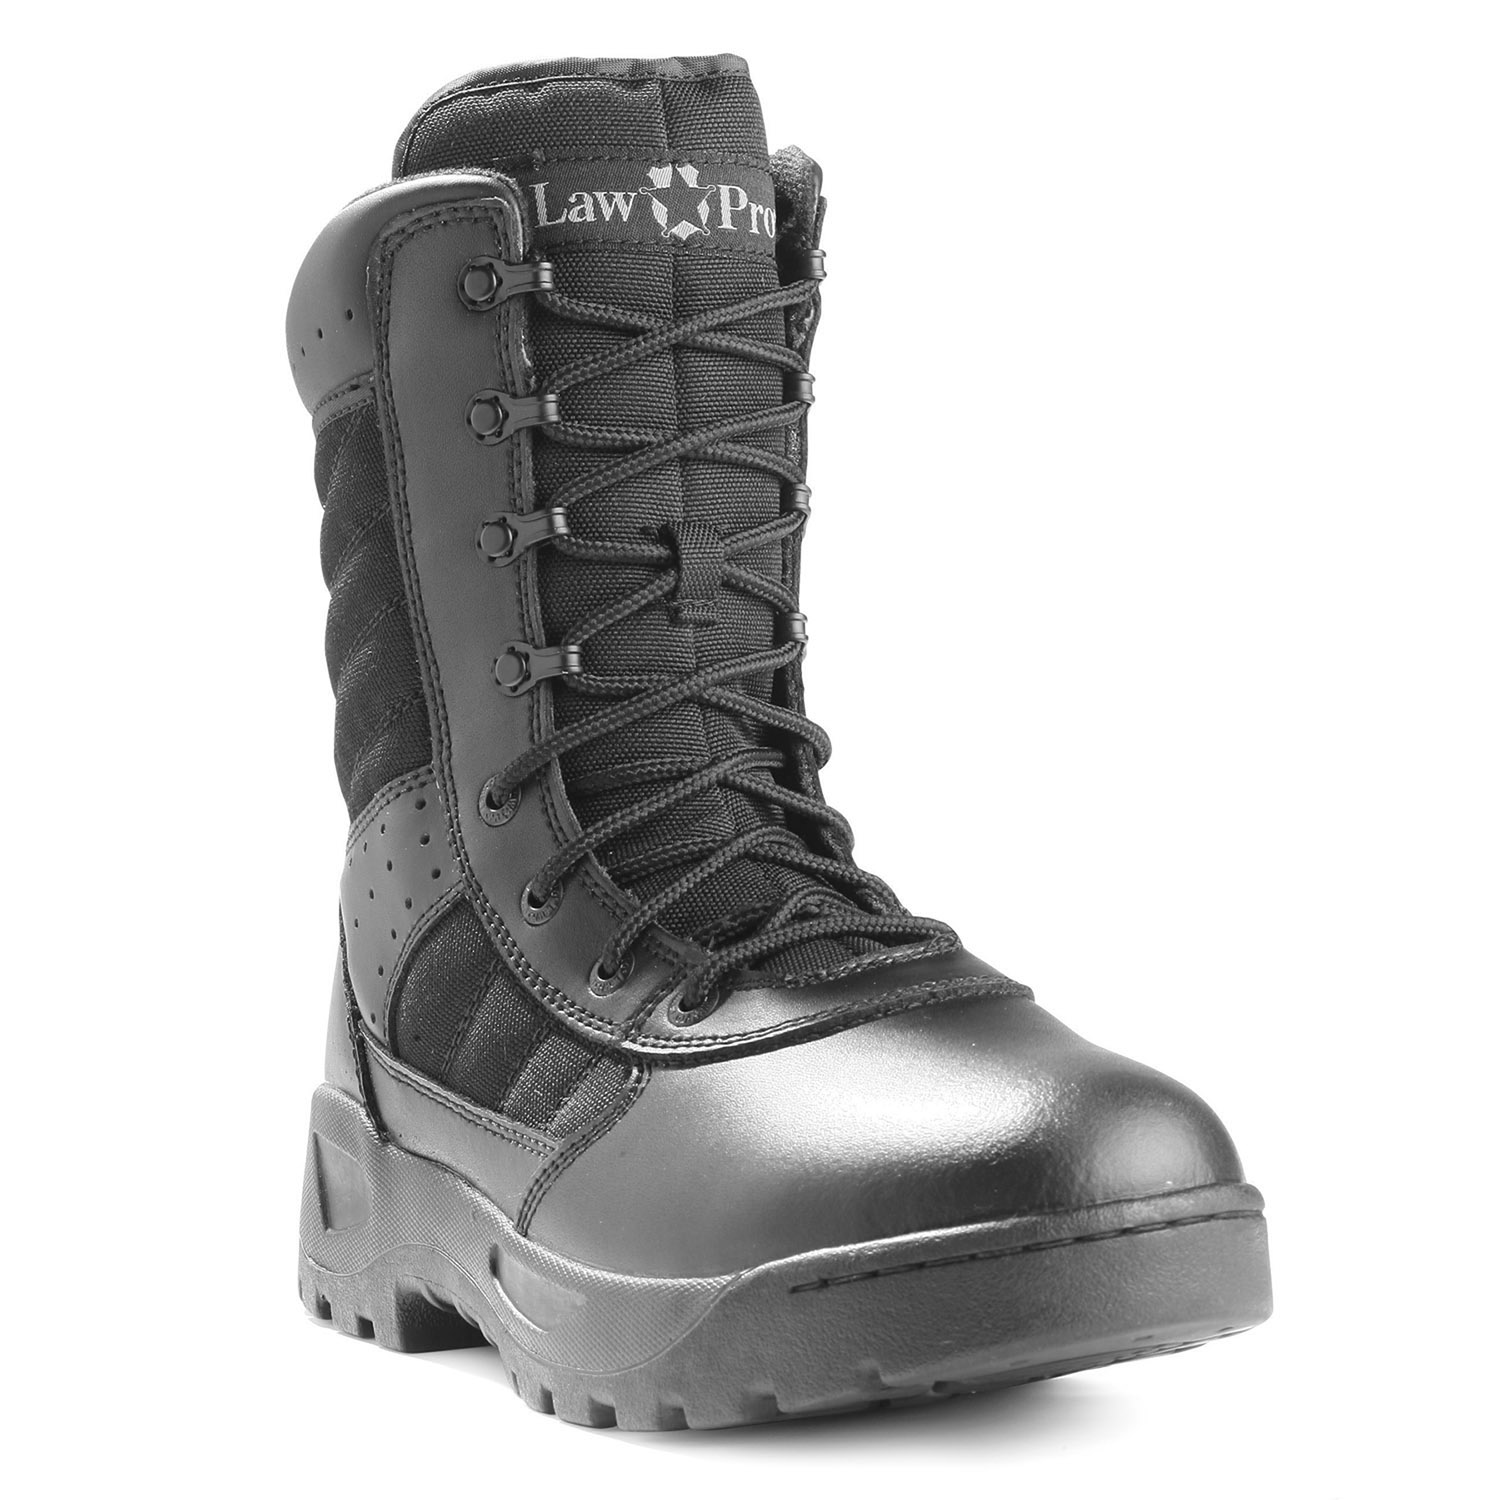 "LawPro 8"" Dispatch 2.0 Side Zip Boot"